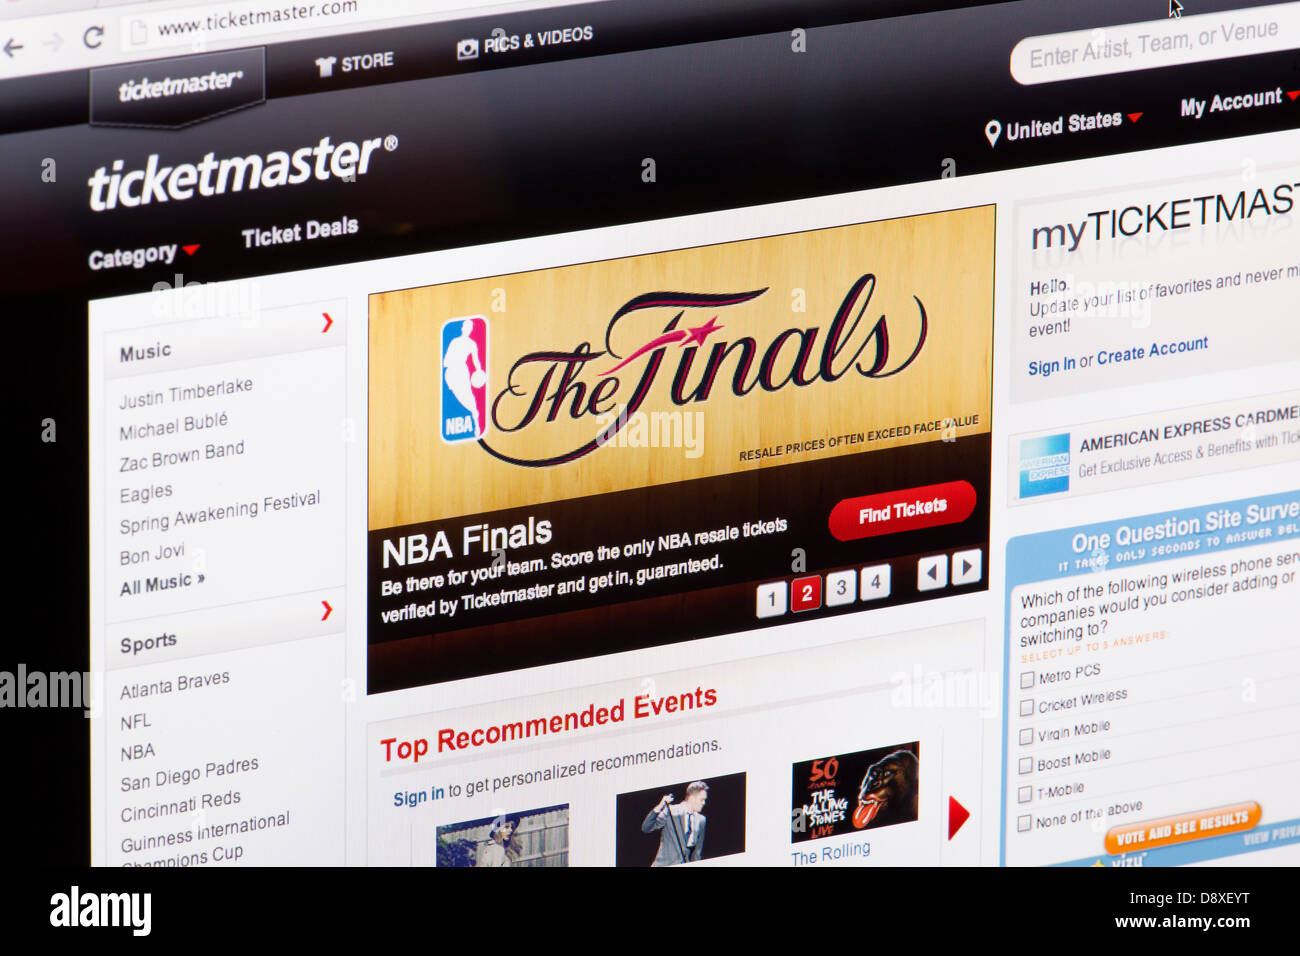 Ticket Master Website or web page on a laptop screen or computer monitor - Stock Image